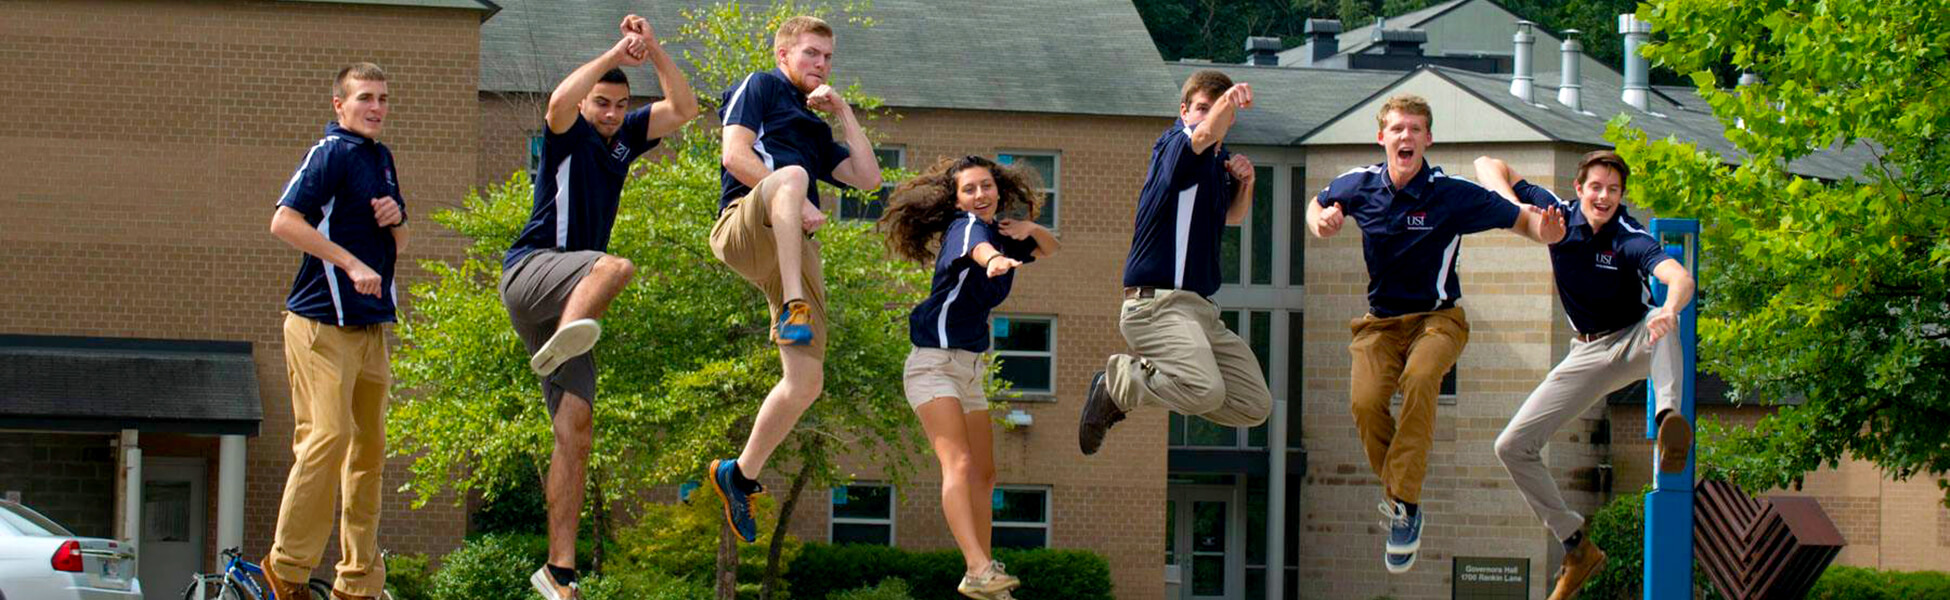 Evan and 6 other student ambassadors, jumping into the air happily